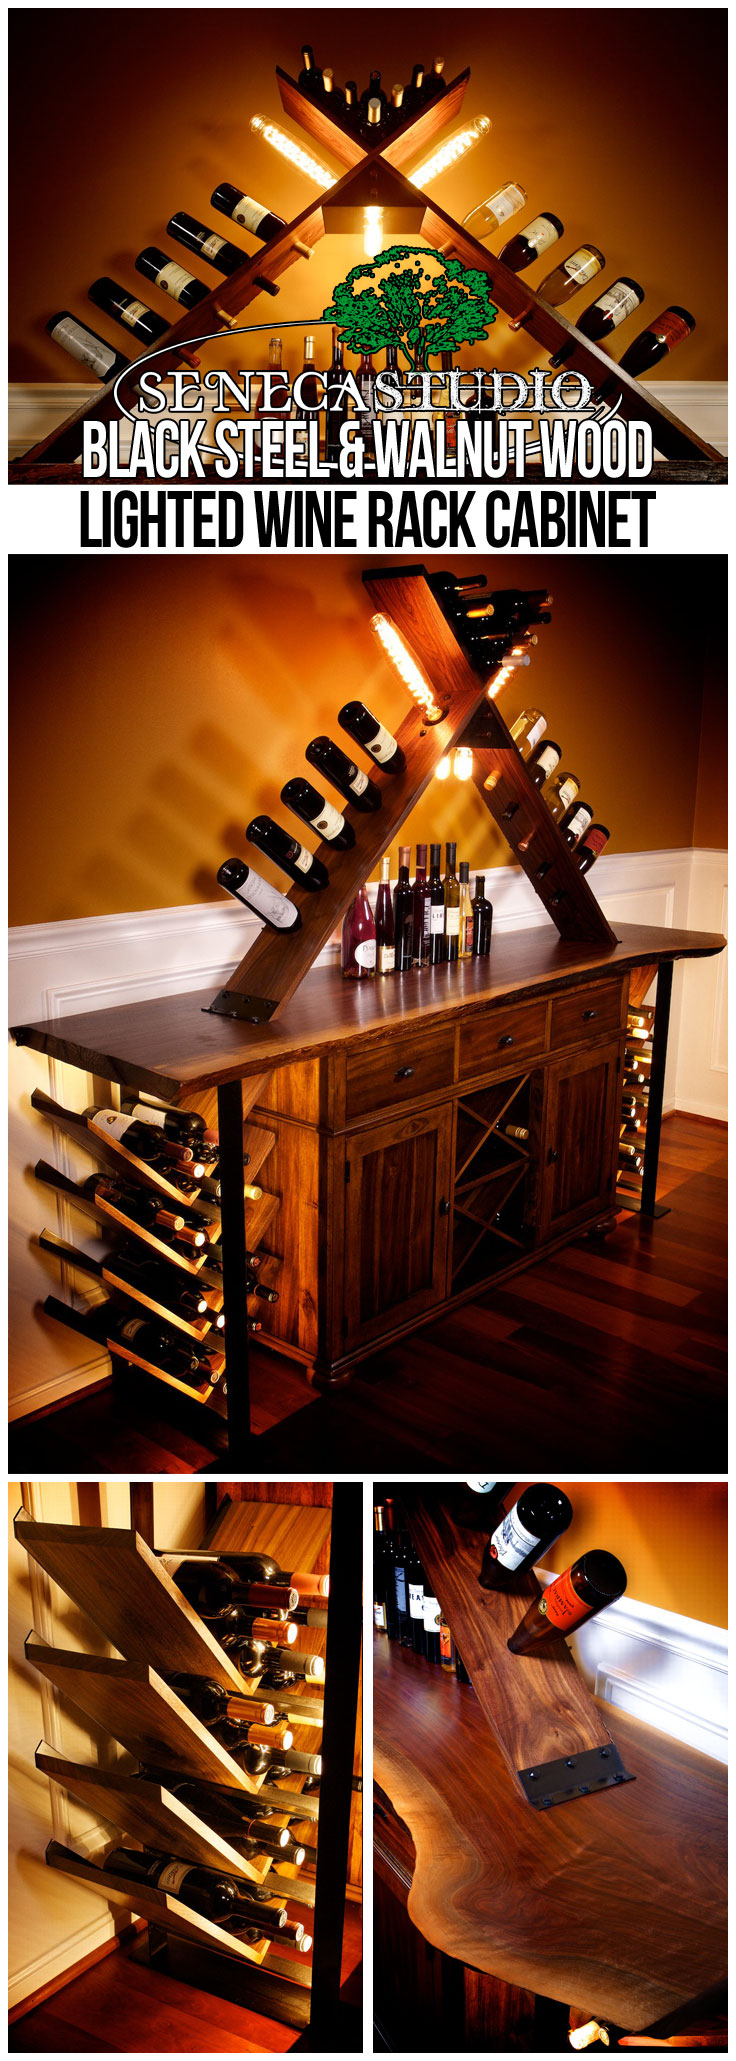 Black Steel and Walnut Wood Lighted Wine Rack Cabinet